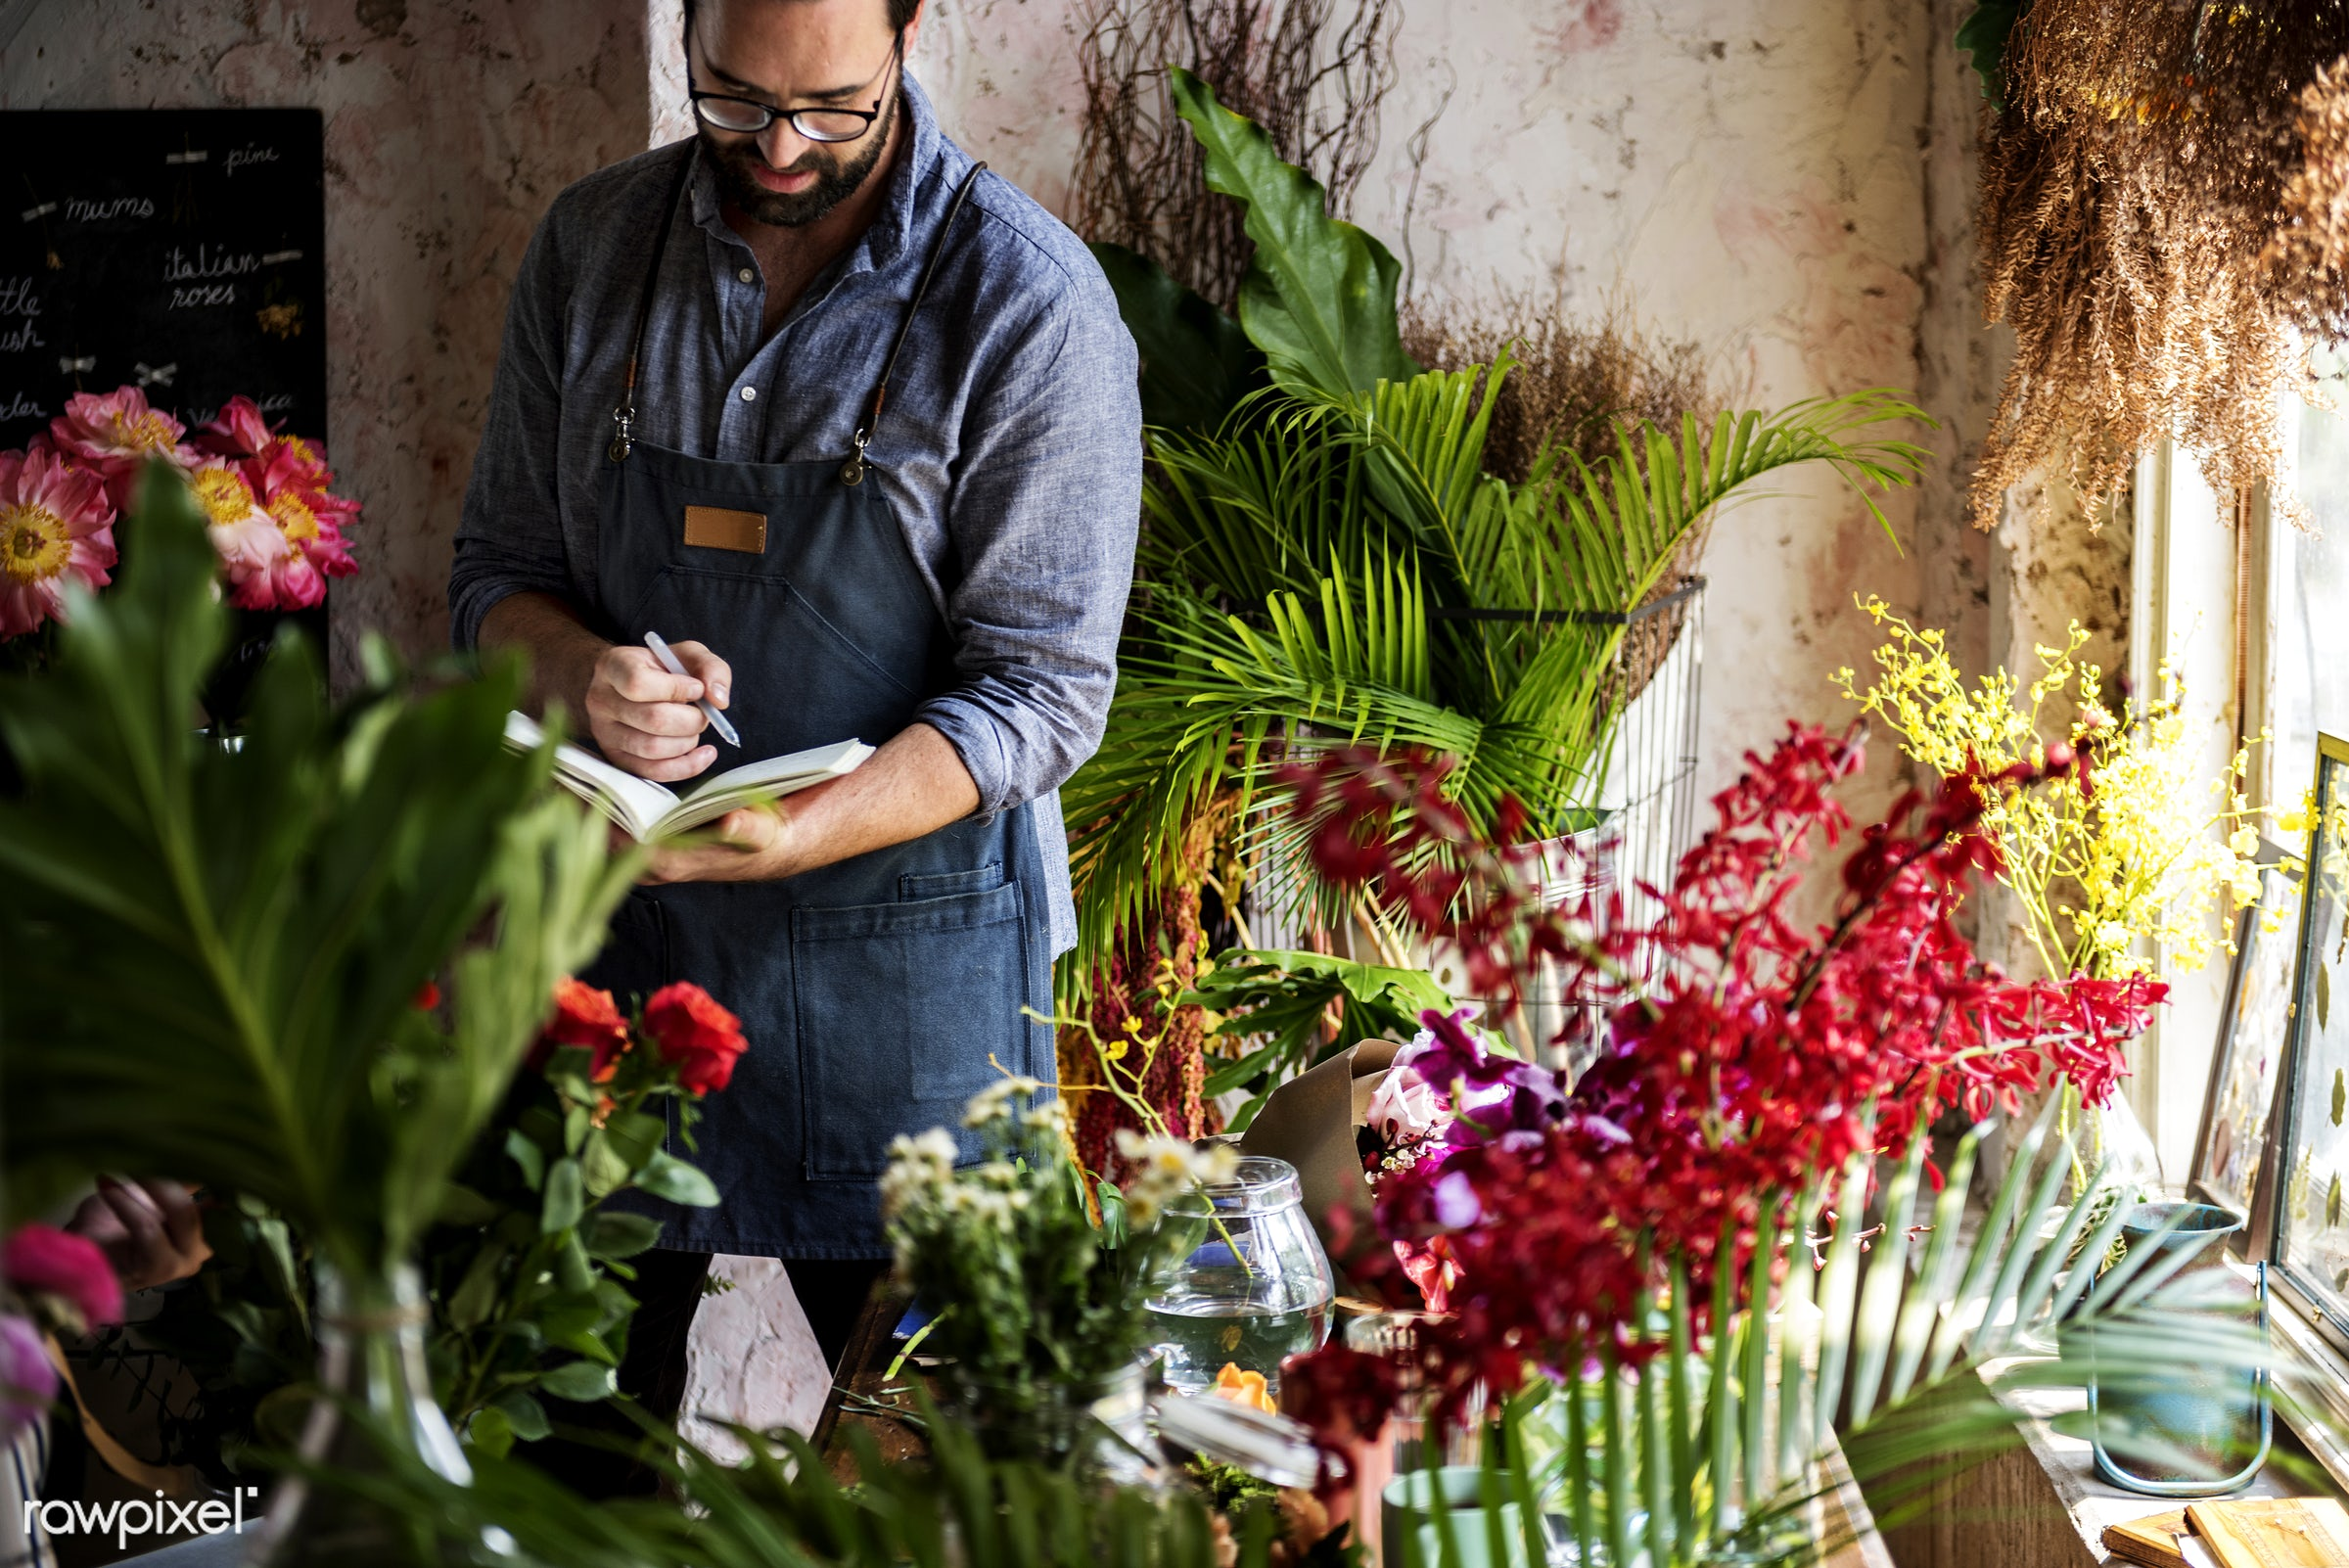 Man taking notes in a flower shop - apron, arrangement, beard, beautiful, bouquet, bunch, business, candid, casual, colorful...